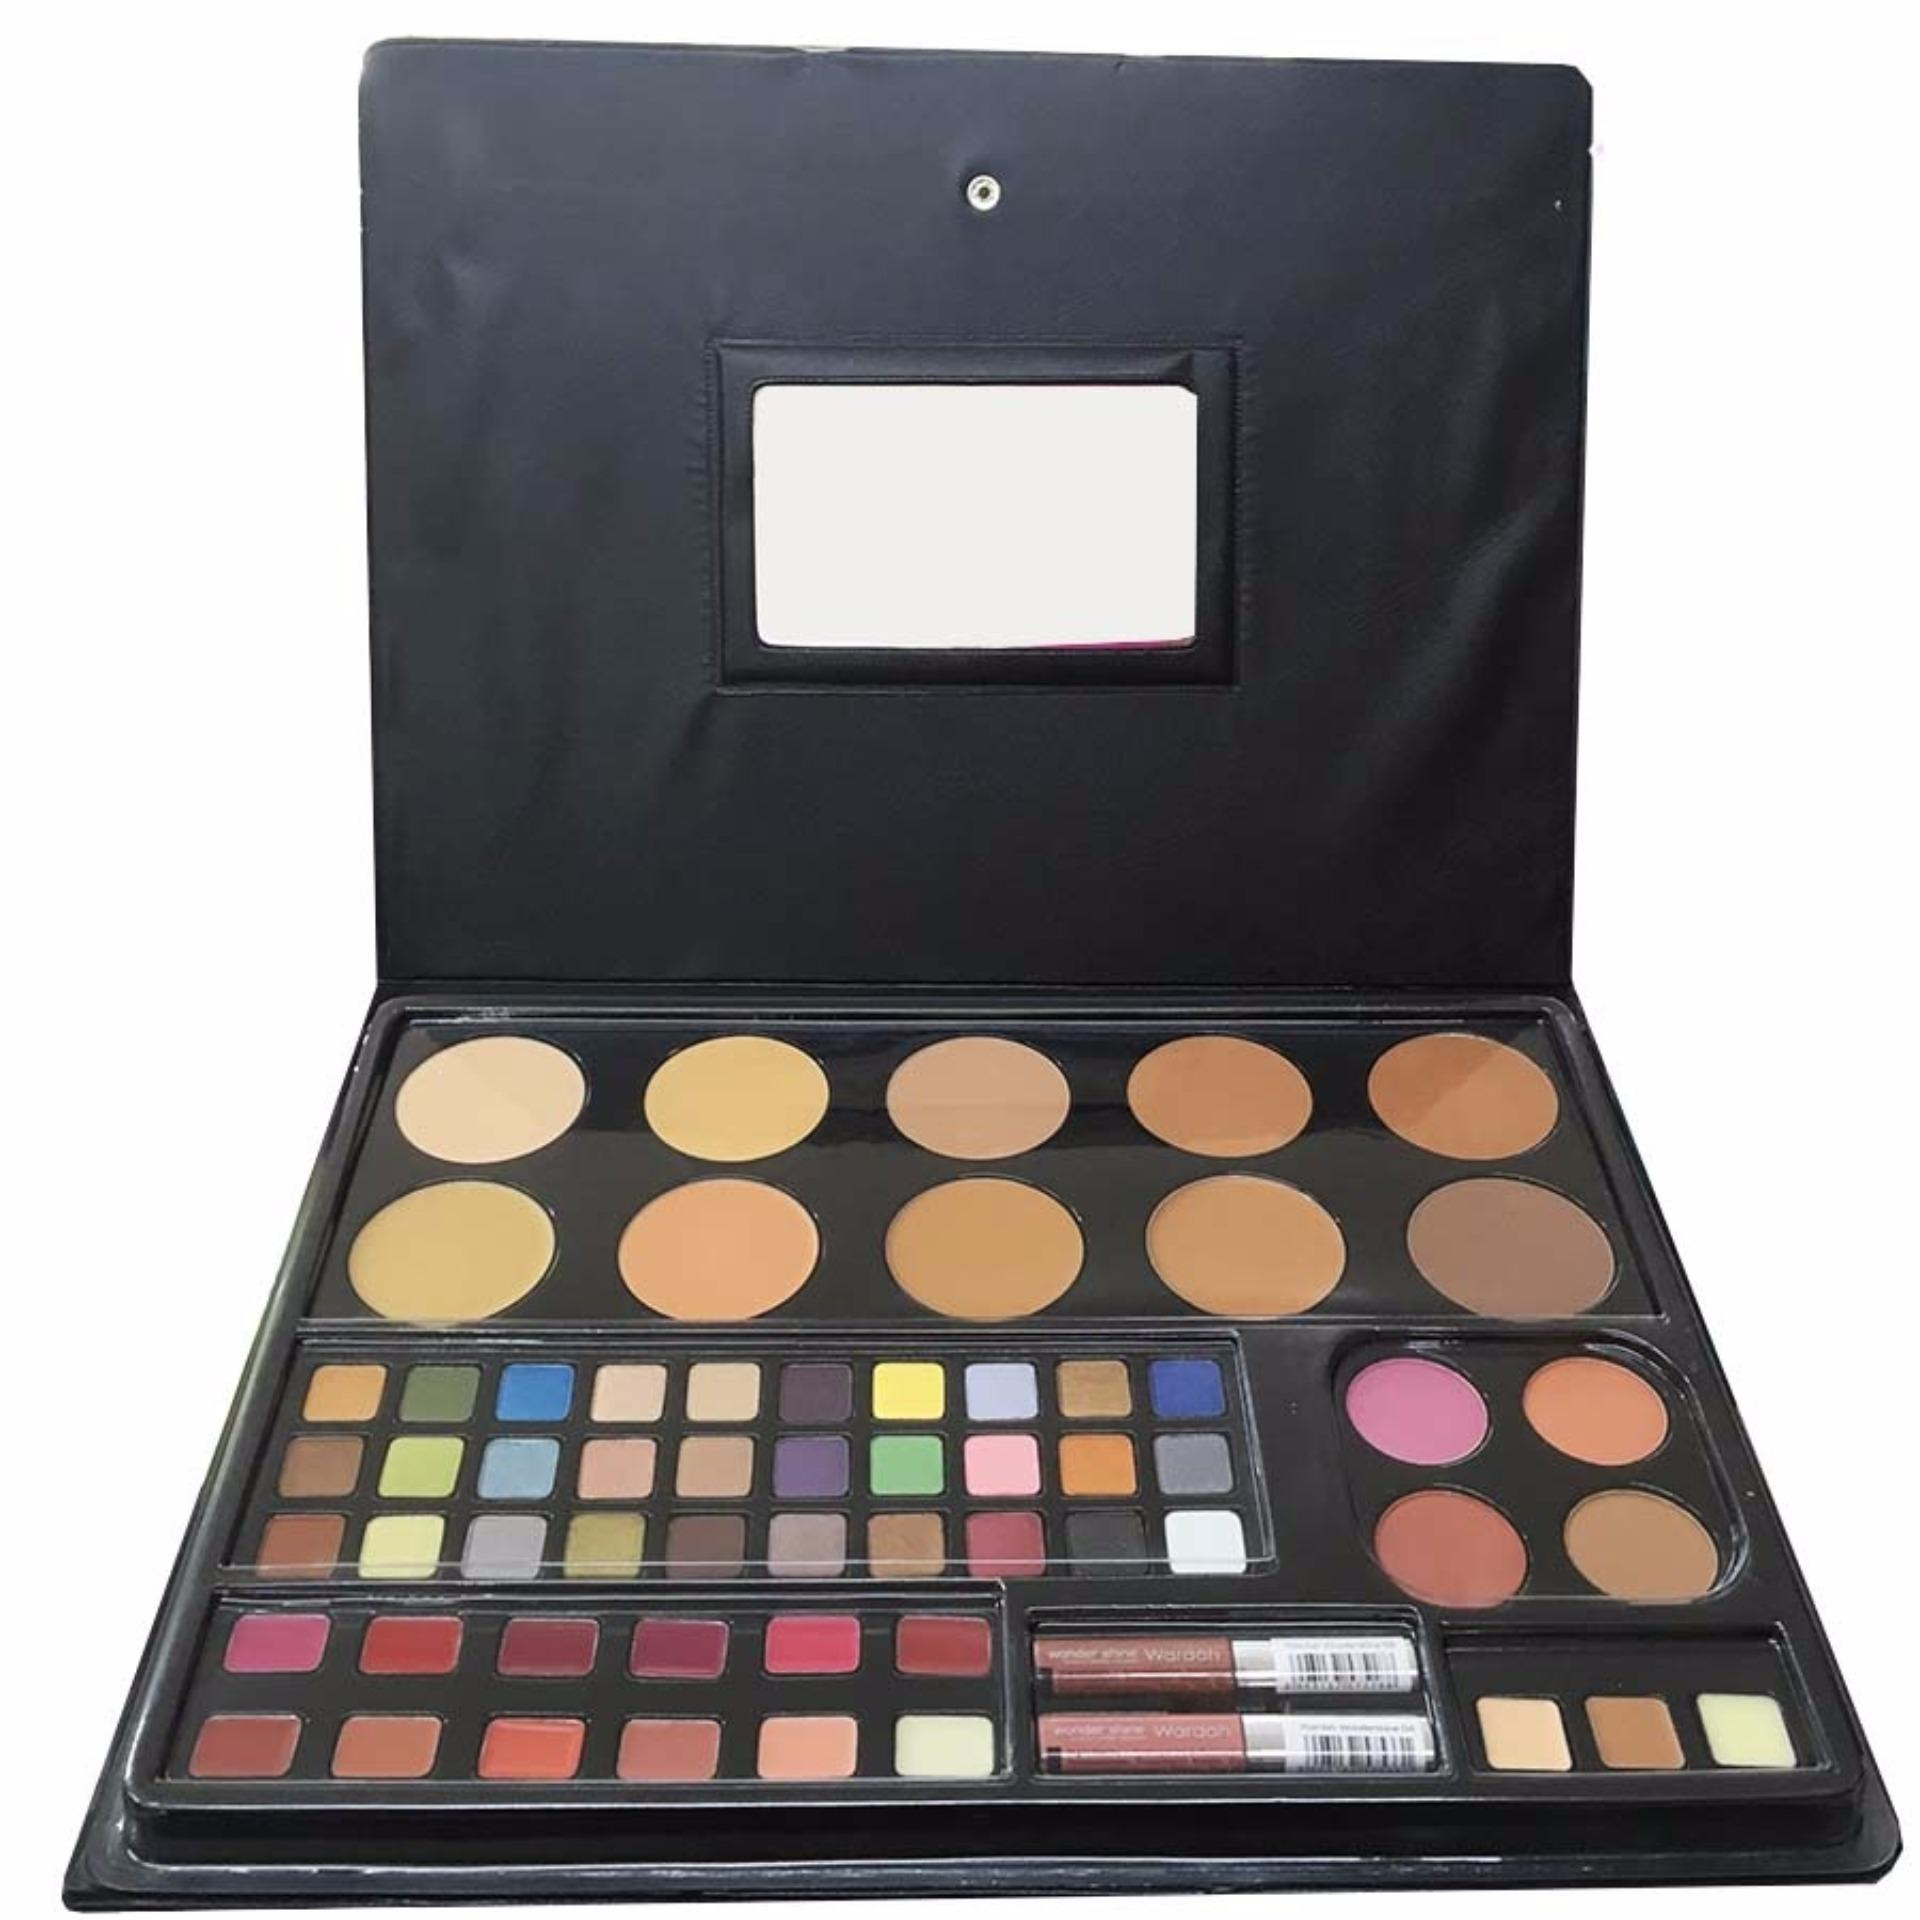 wardah professional palette besar make up kit bb6d fa28a64be7f8080c2093c0c